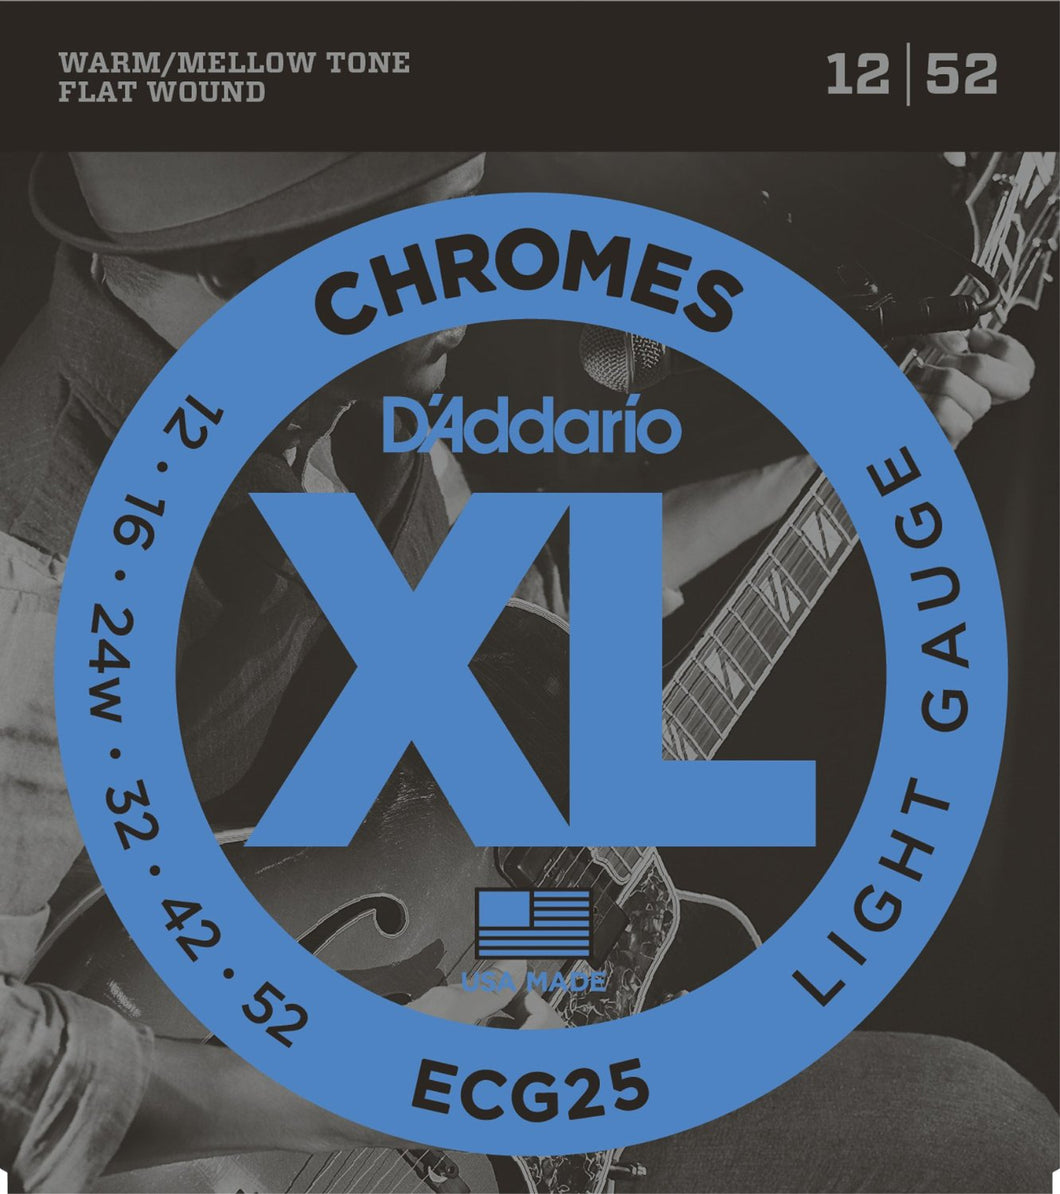 D'Addario ECG25 XL Chromes Light Electric Guitar Strings